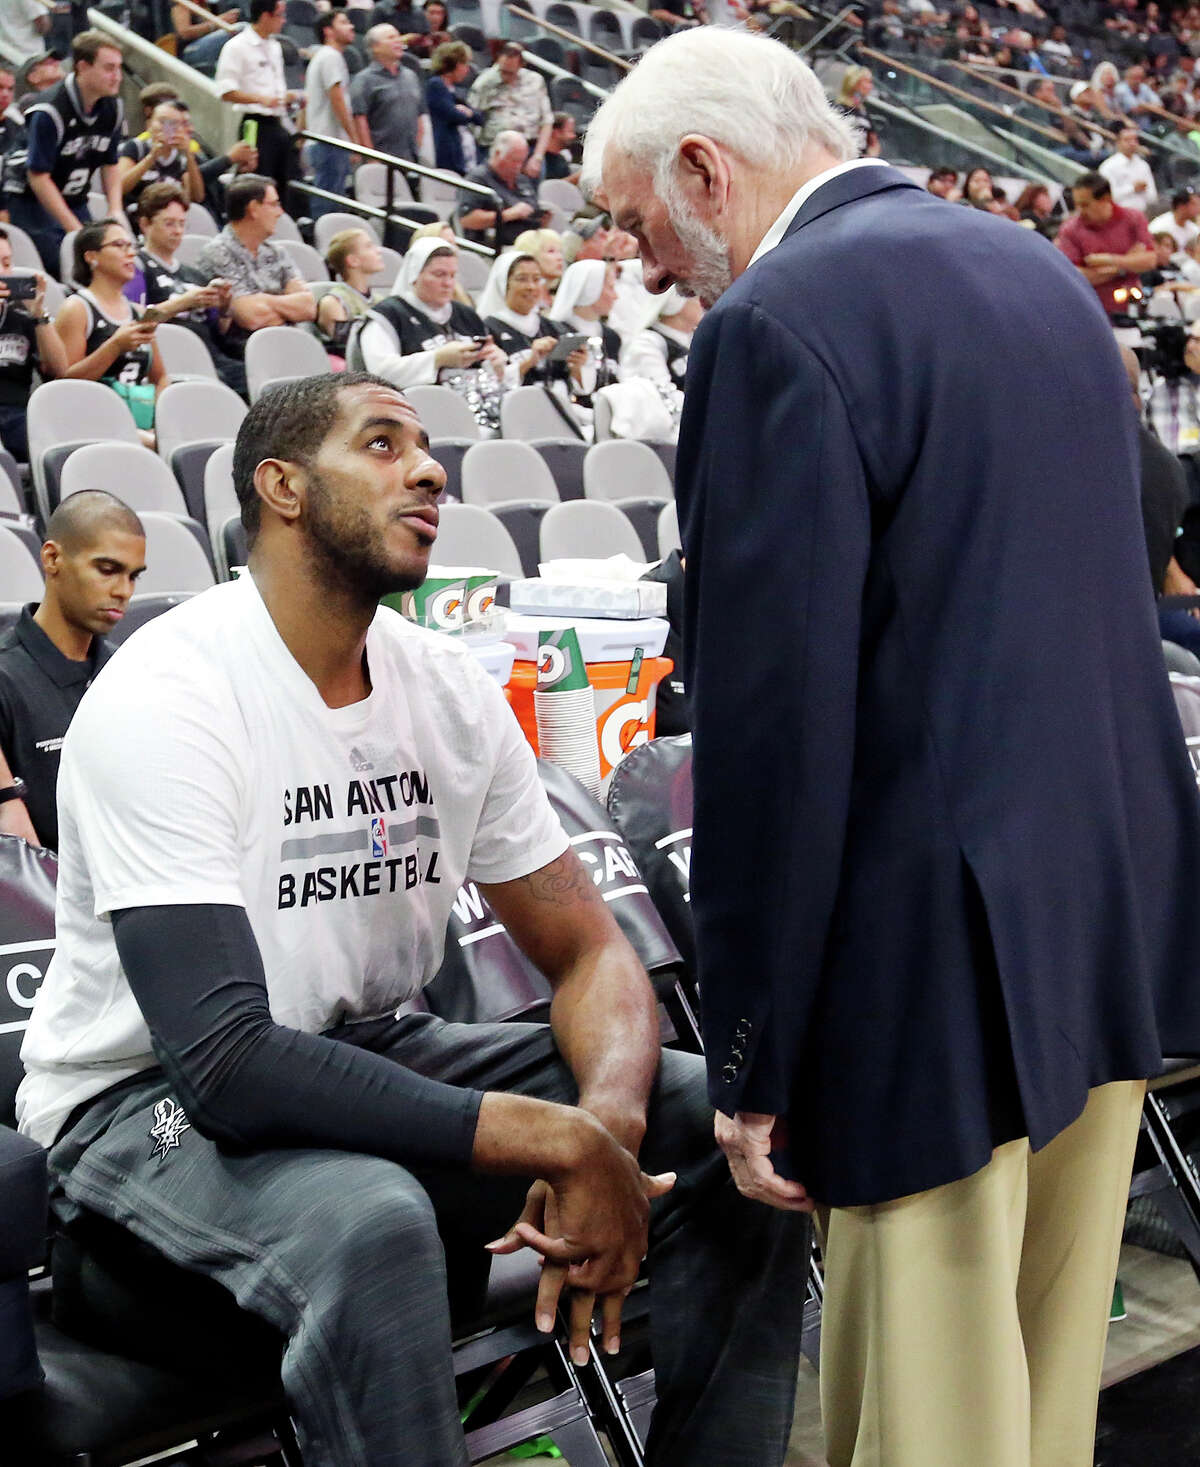 Spurs Coach Gregg Popovich contributed to the outpouring of support shown to LaMarcus Aldridge following his abrupt retirement decision due to a health condition.he game with the Pistons Sunday Oct. 18, 2015 at the AT&T Center.